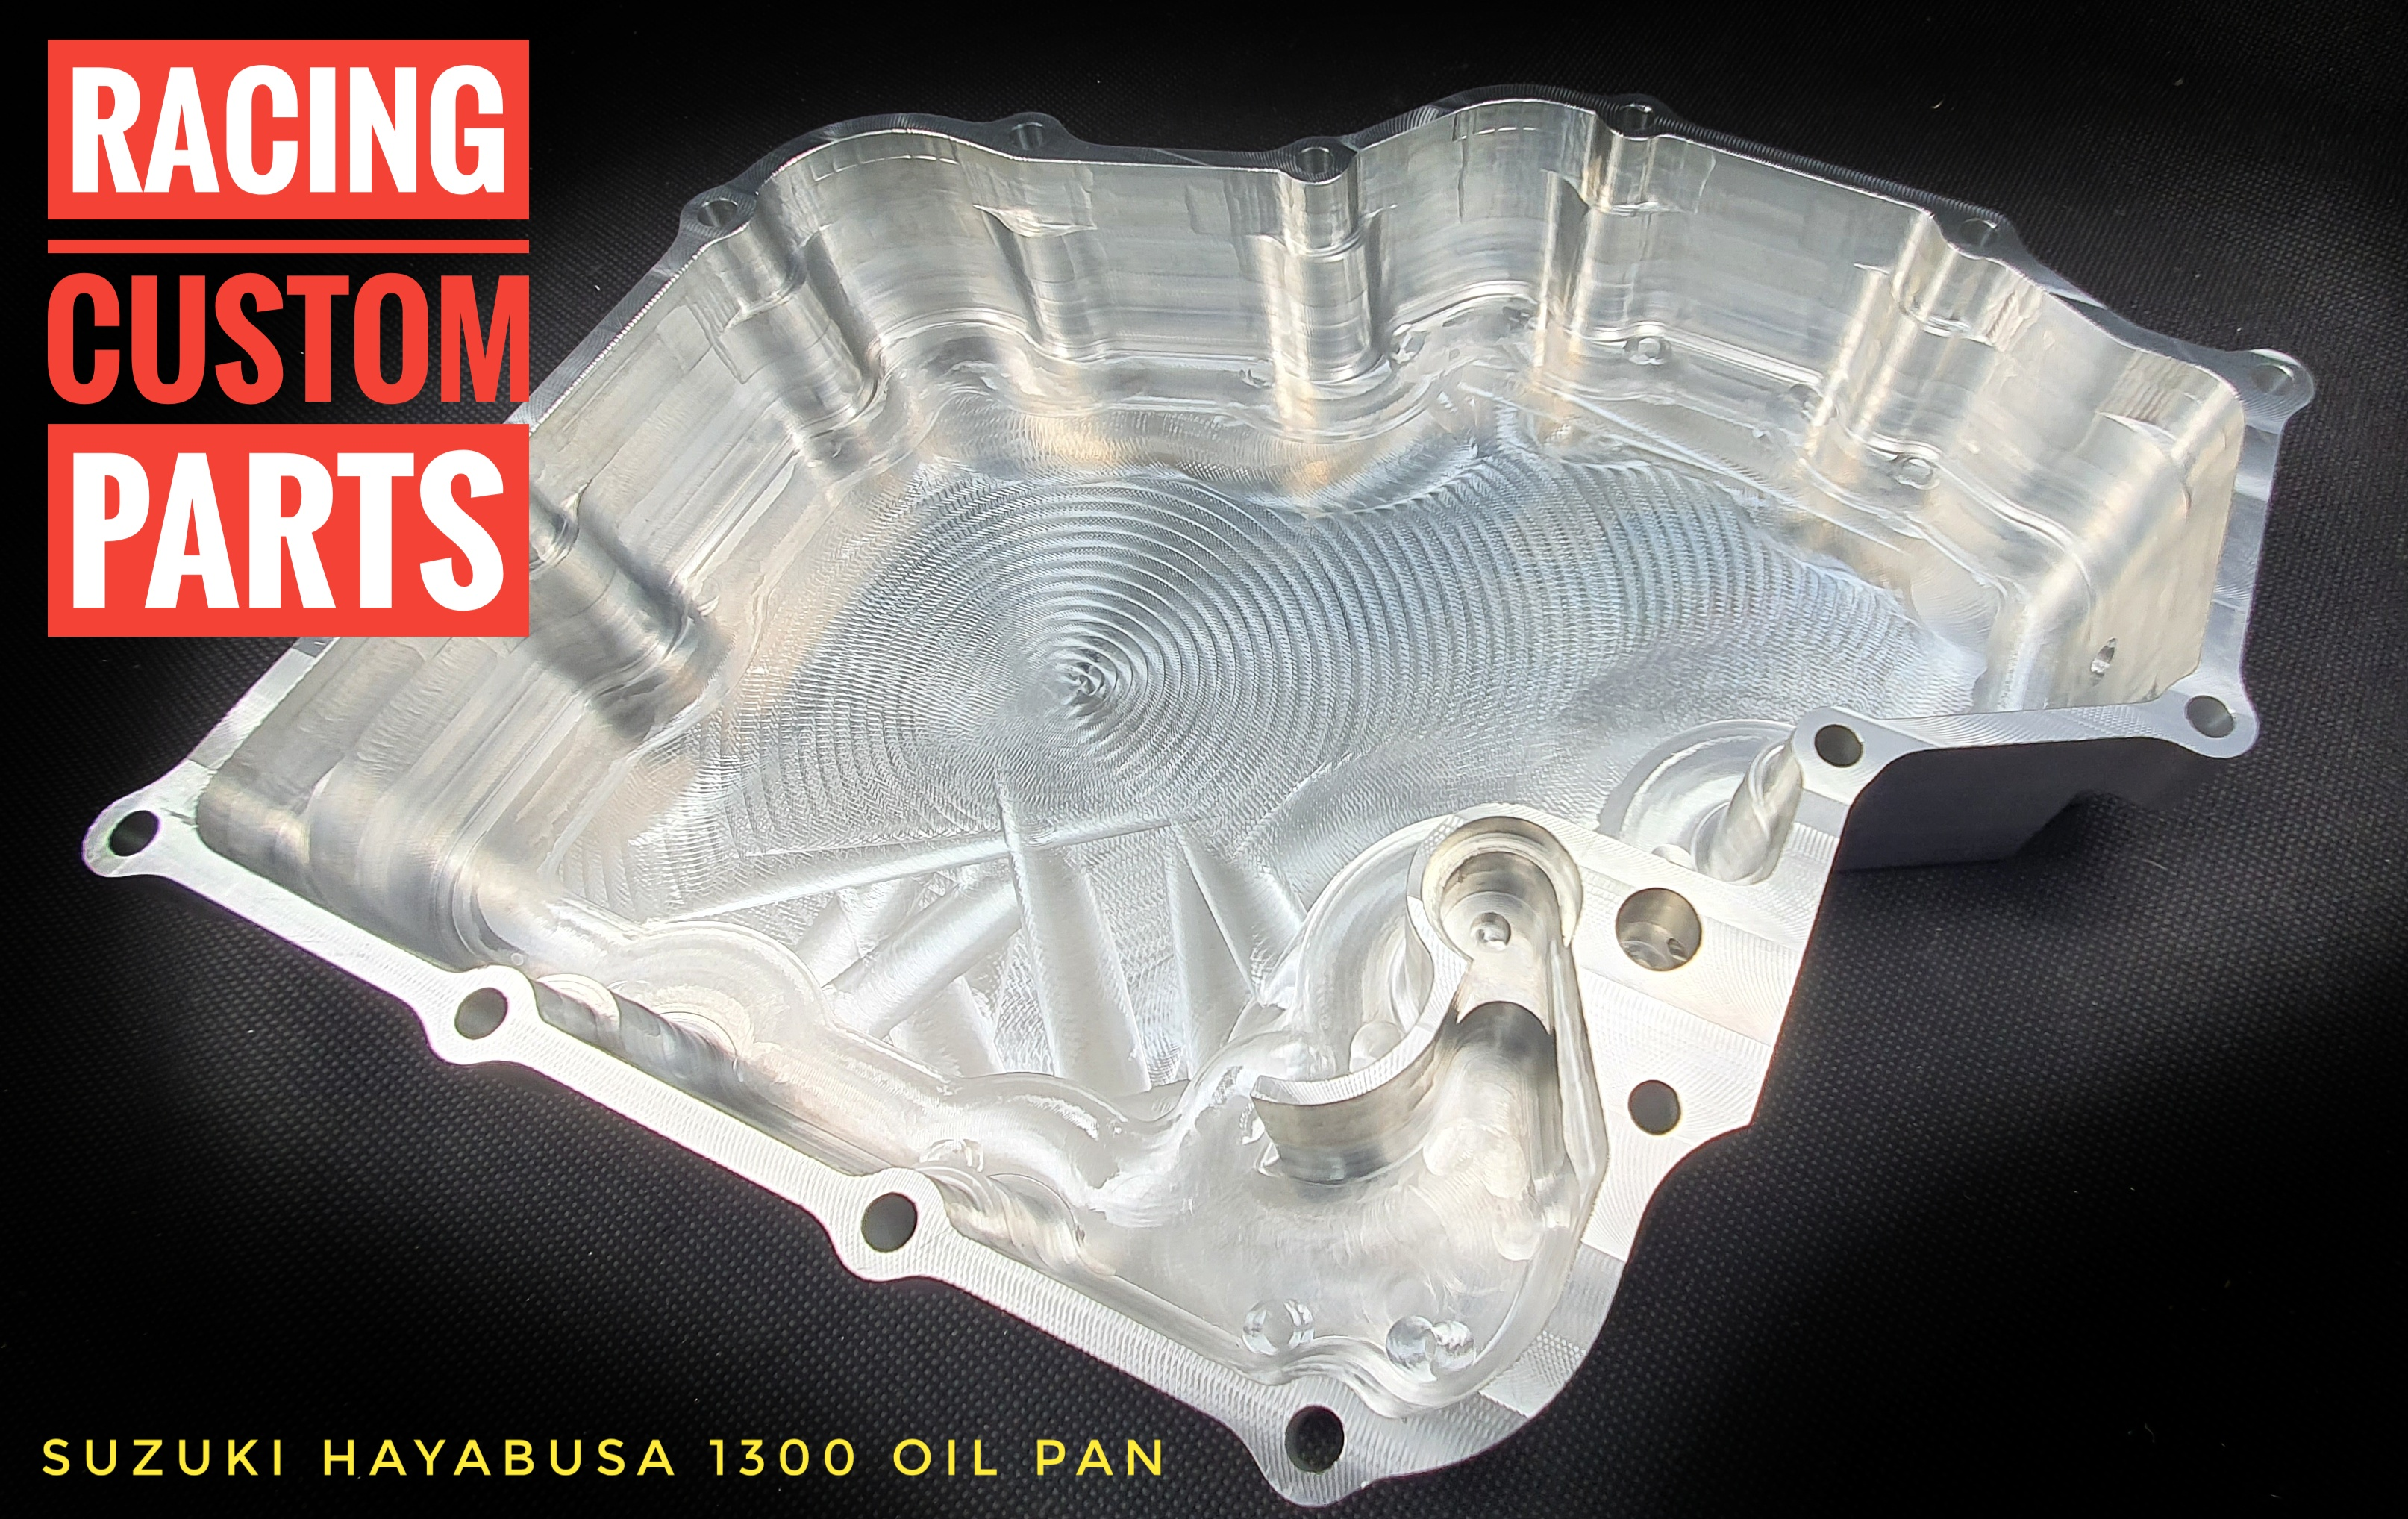 suzuki hayabusa billet cnc oil pan racing custom parts